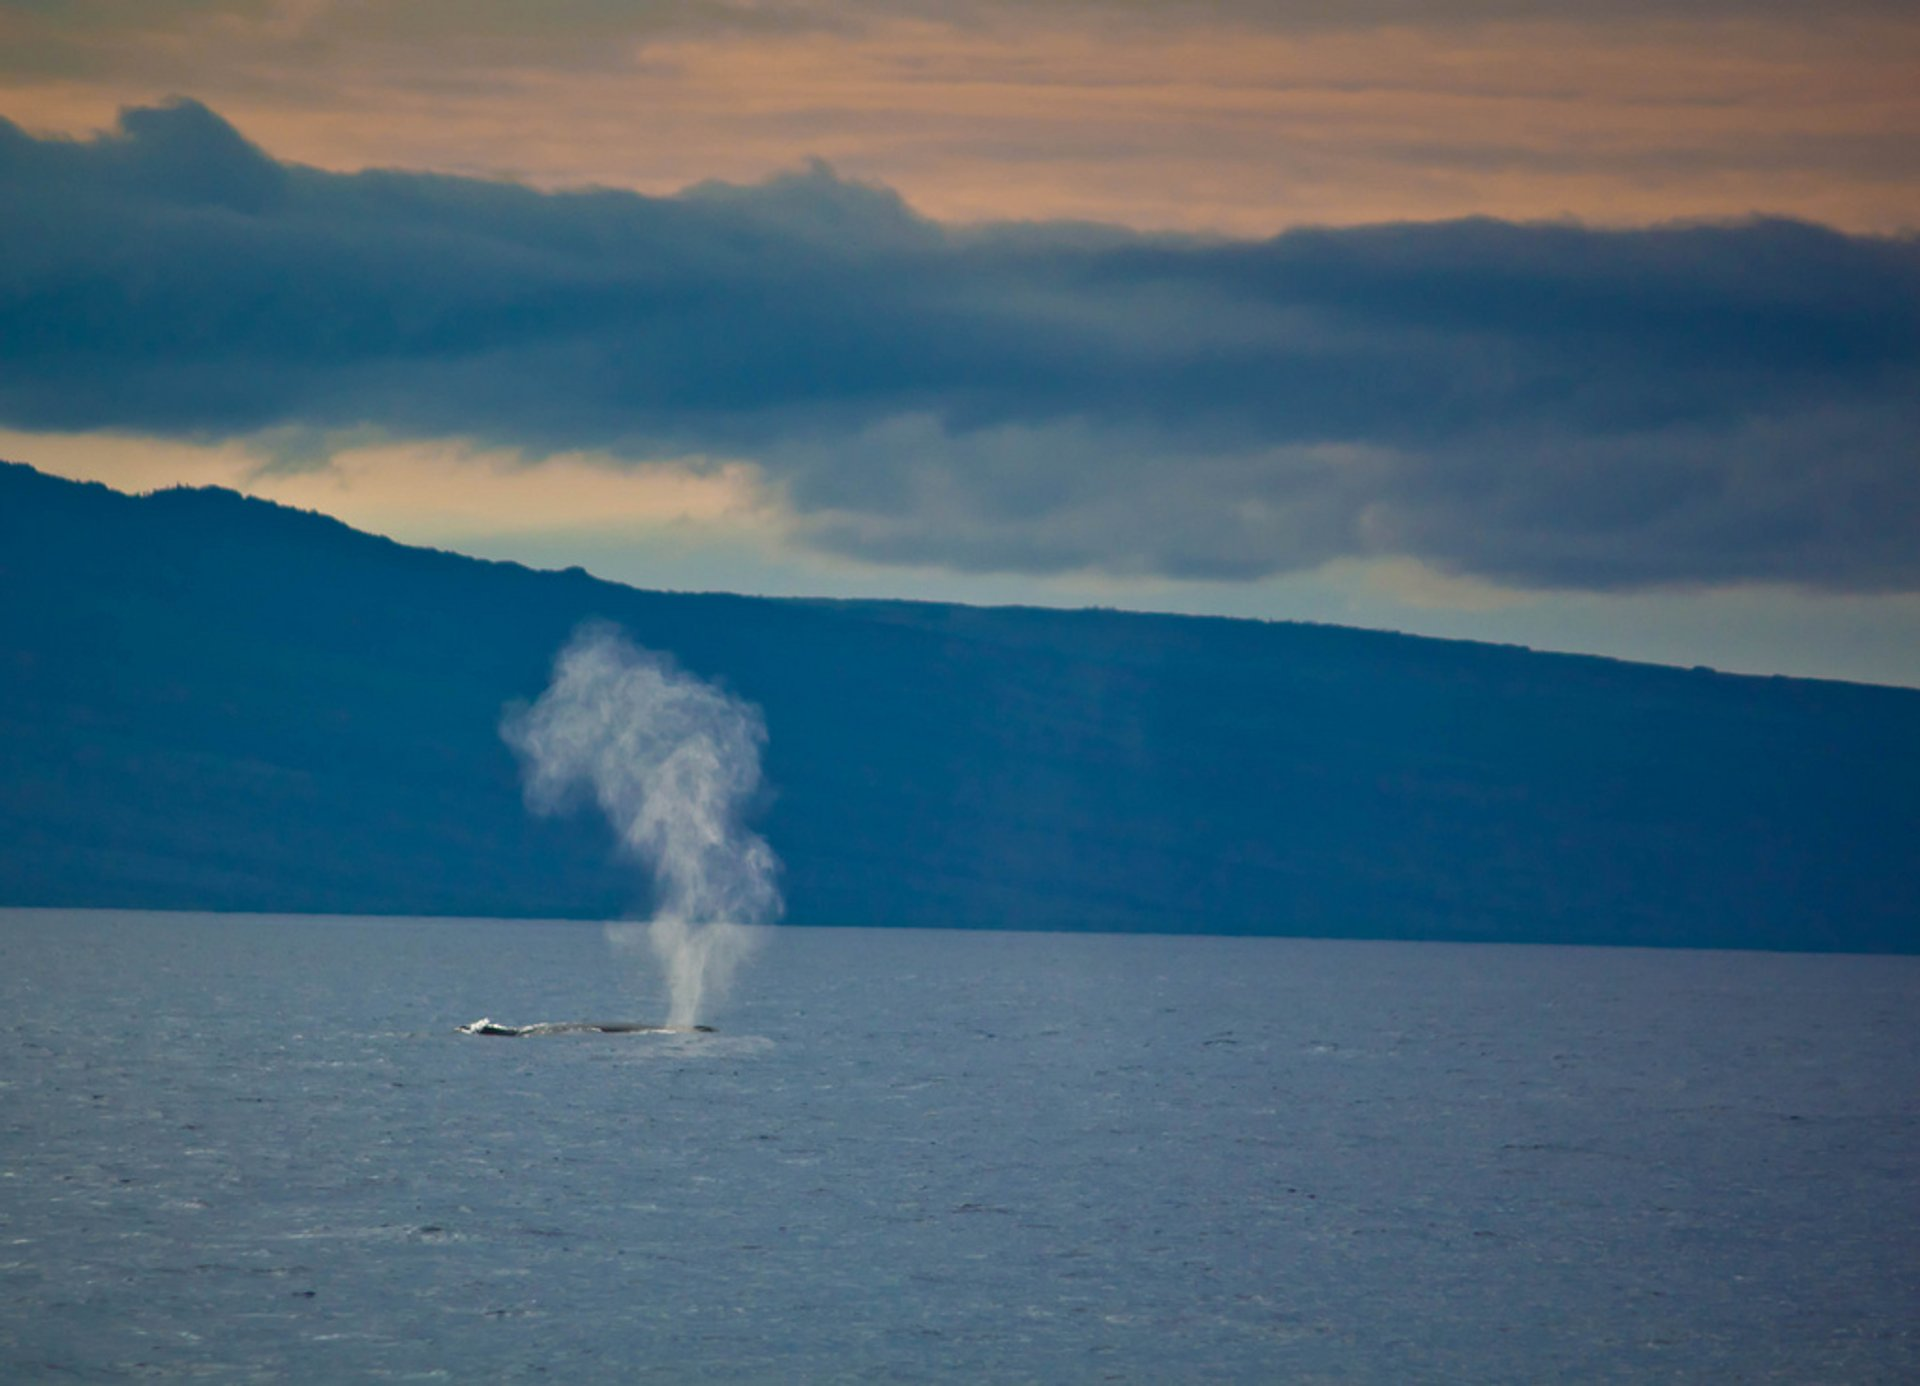 Whale Watching in Hawaii - Best Season